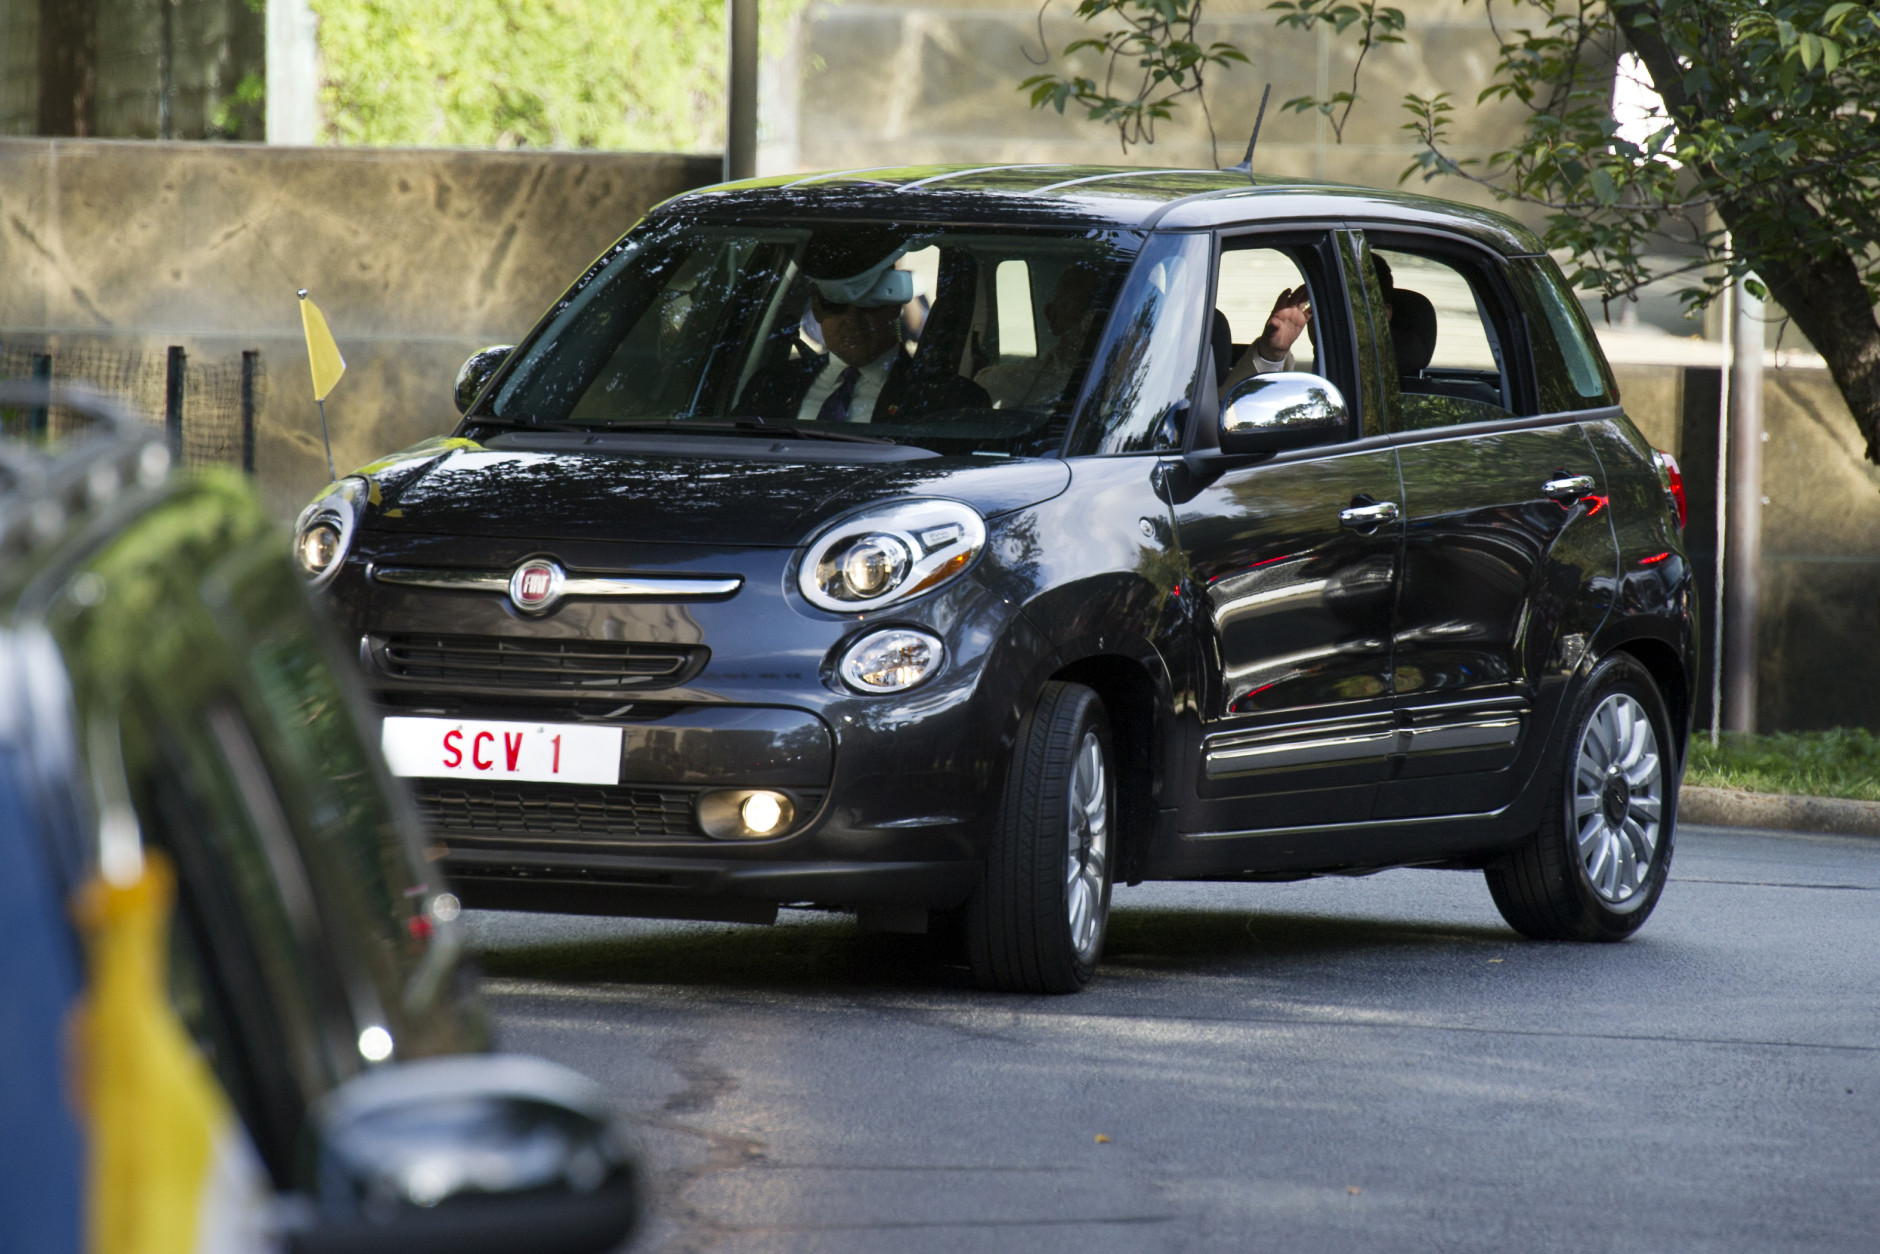 Pope Francis arrives at the Apostolic Nunciature, the Vatican's diplomatic mission in the heart of Washington, Tuesday, Sept. 22, 2015, in a Fiat 500. Pope Francis will visit the White House on Wednesday, becoming only the third pope to visit the White House. (AP Photo/Cliff Owen)